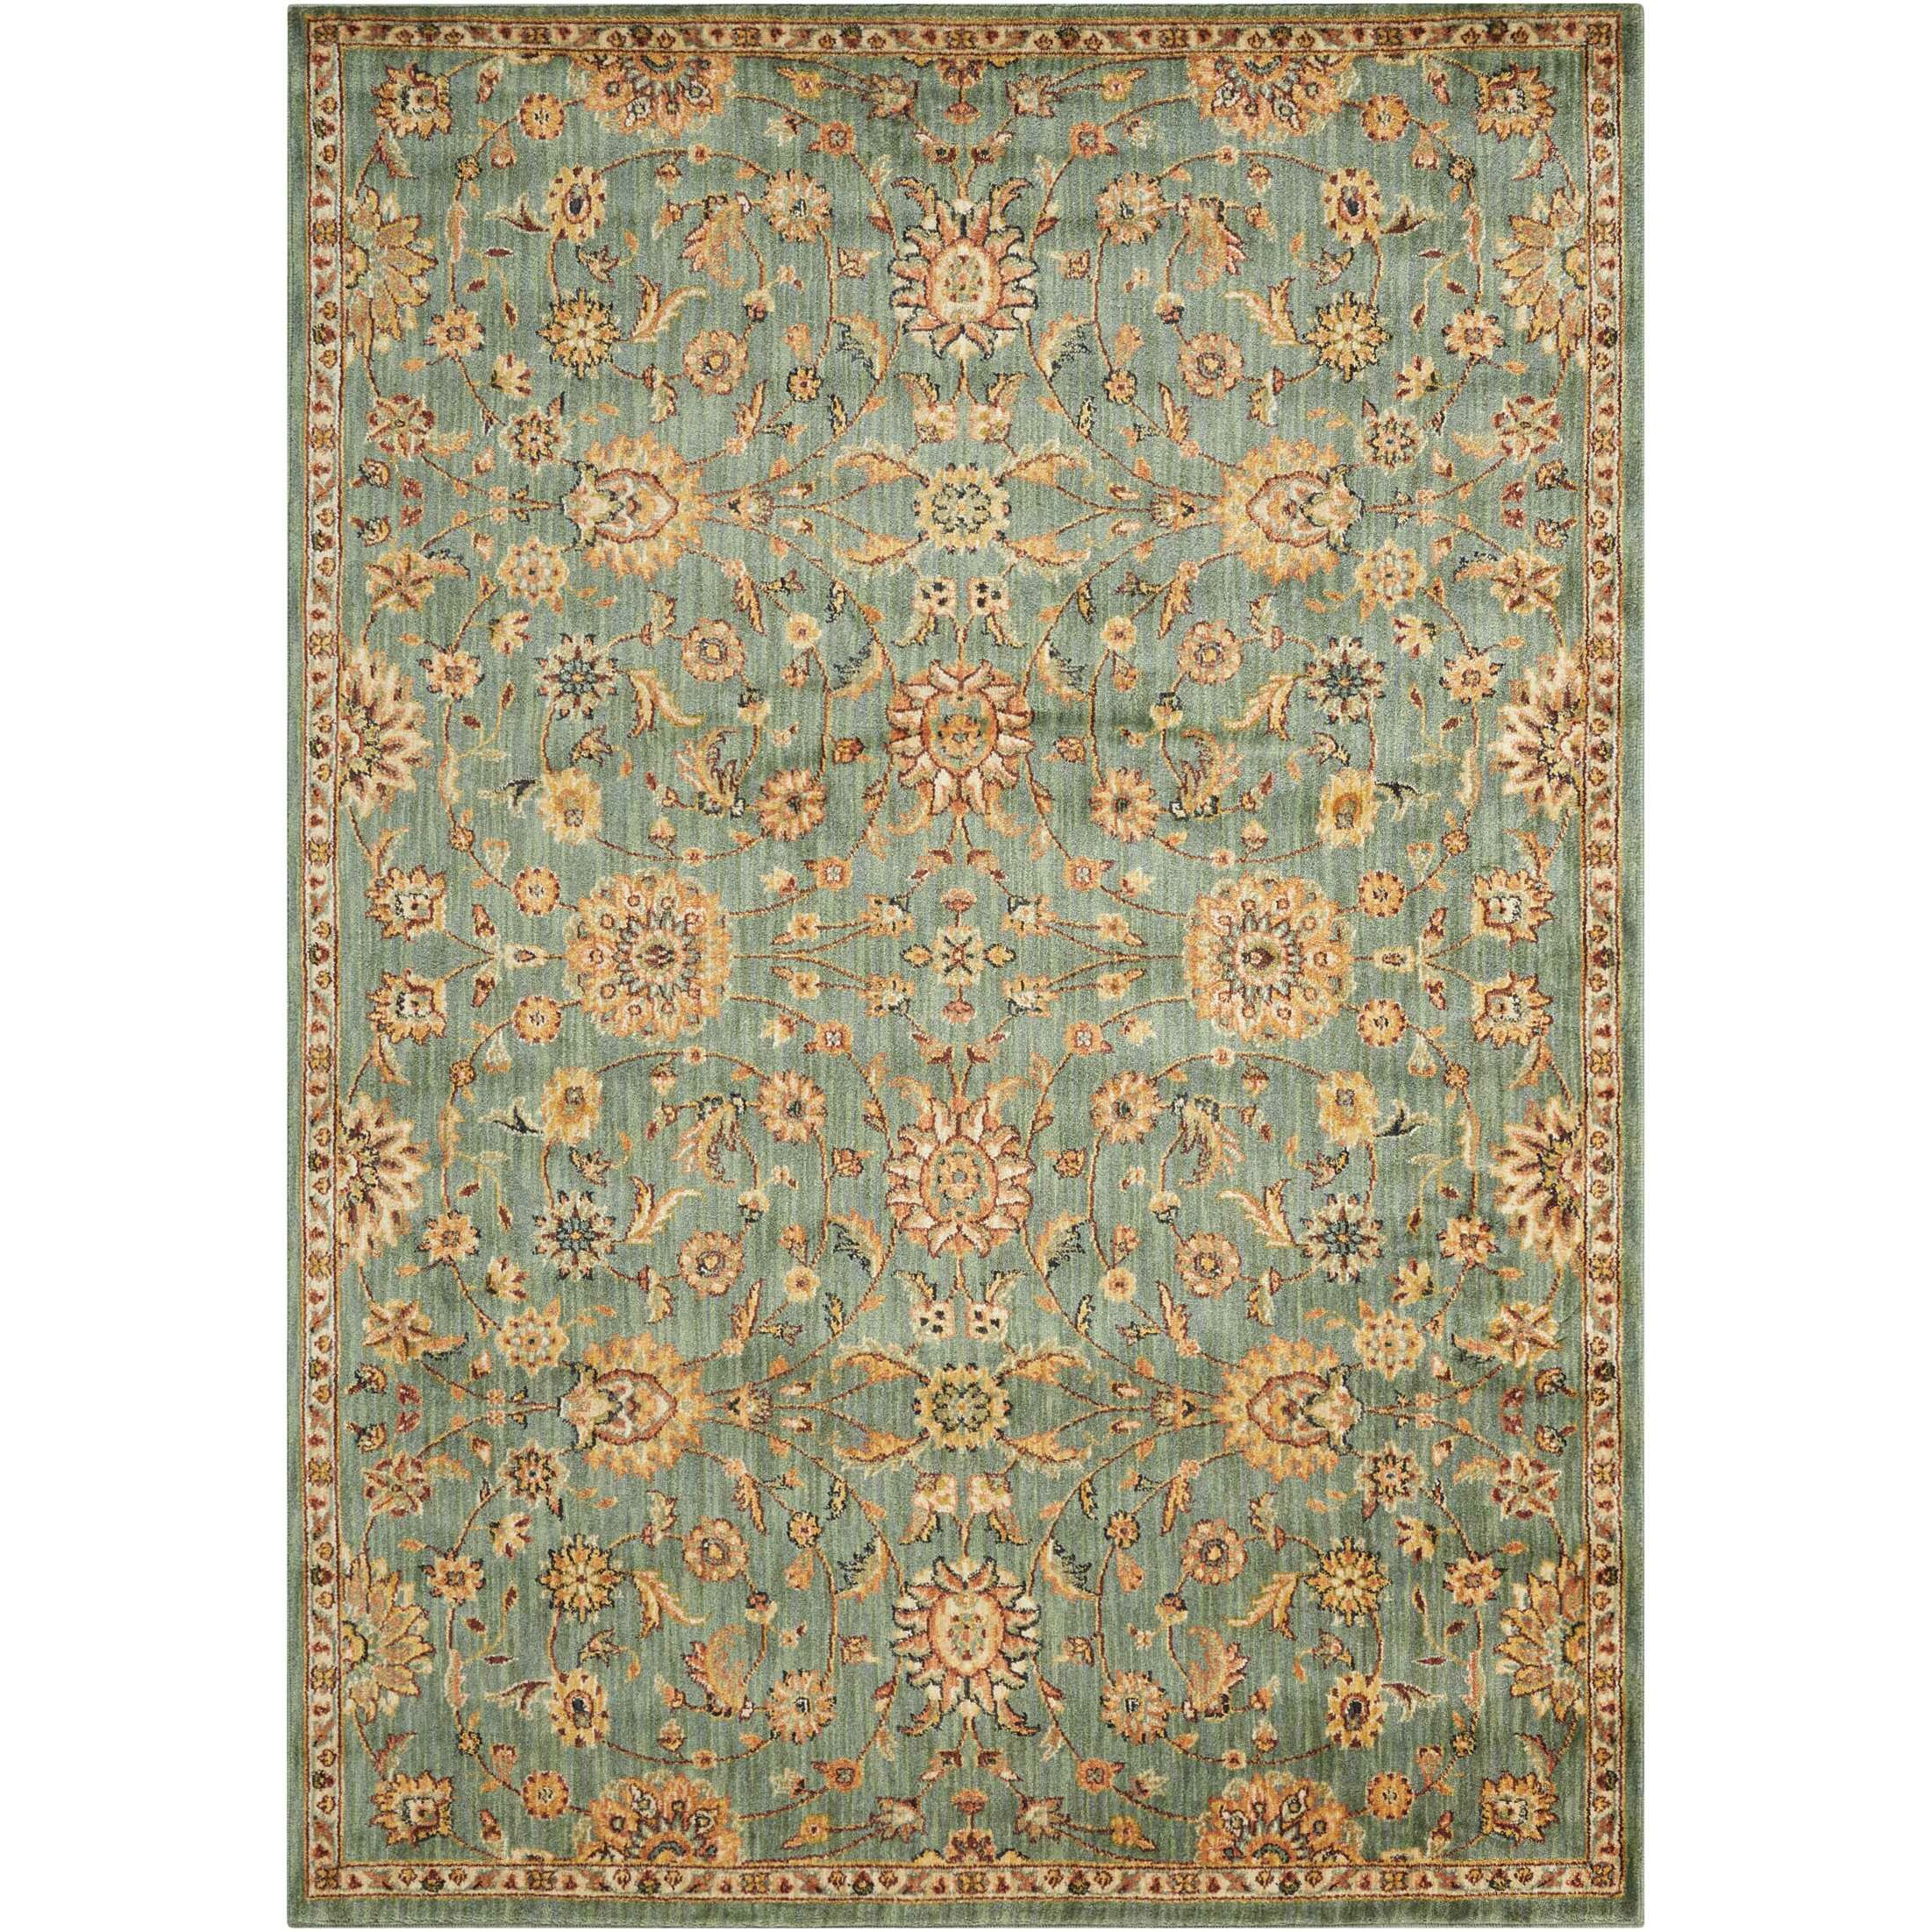 Teal Area Rug: Calvin Klein Rugs Ancient Times Teal Area Rug